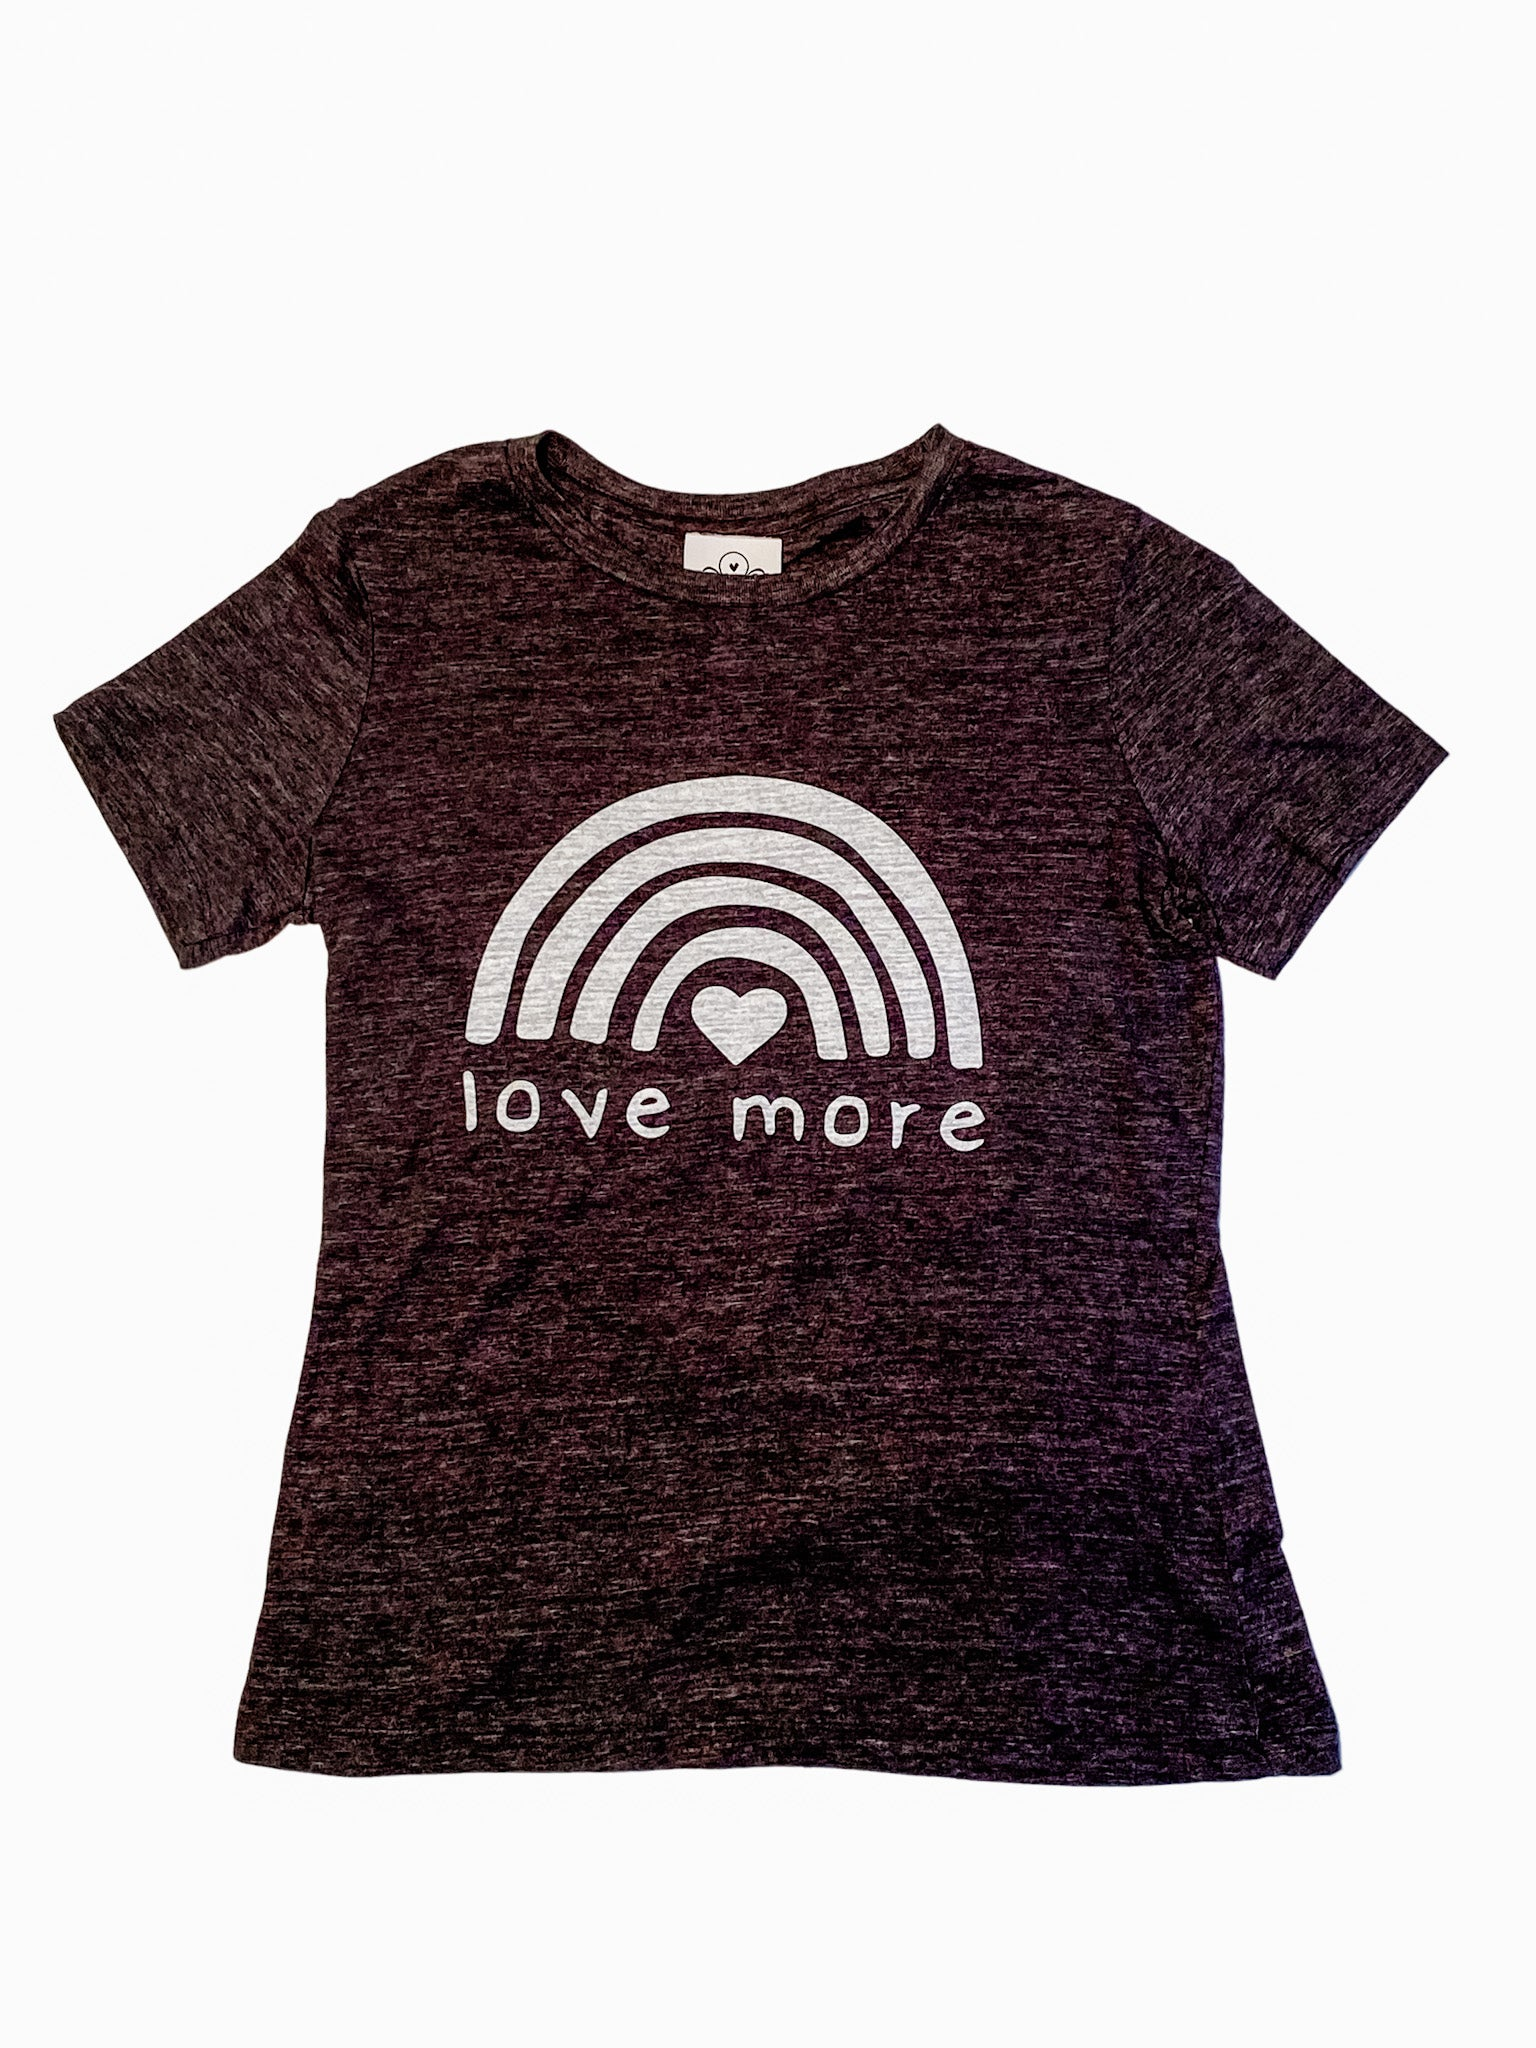 Love More Charcoal Grey T-Shirt